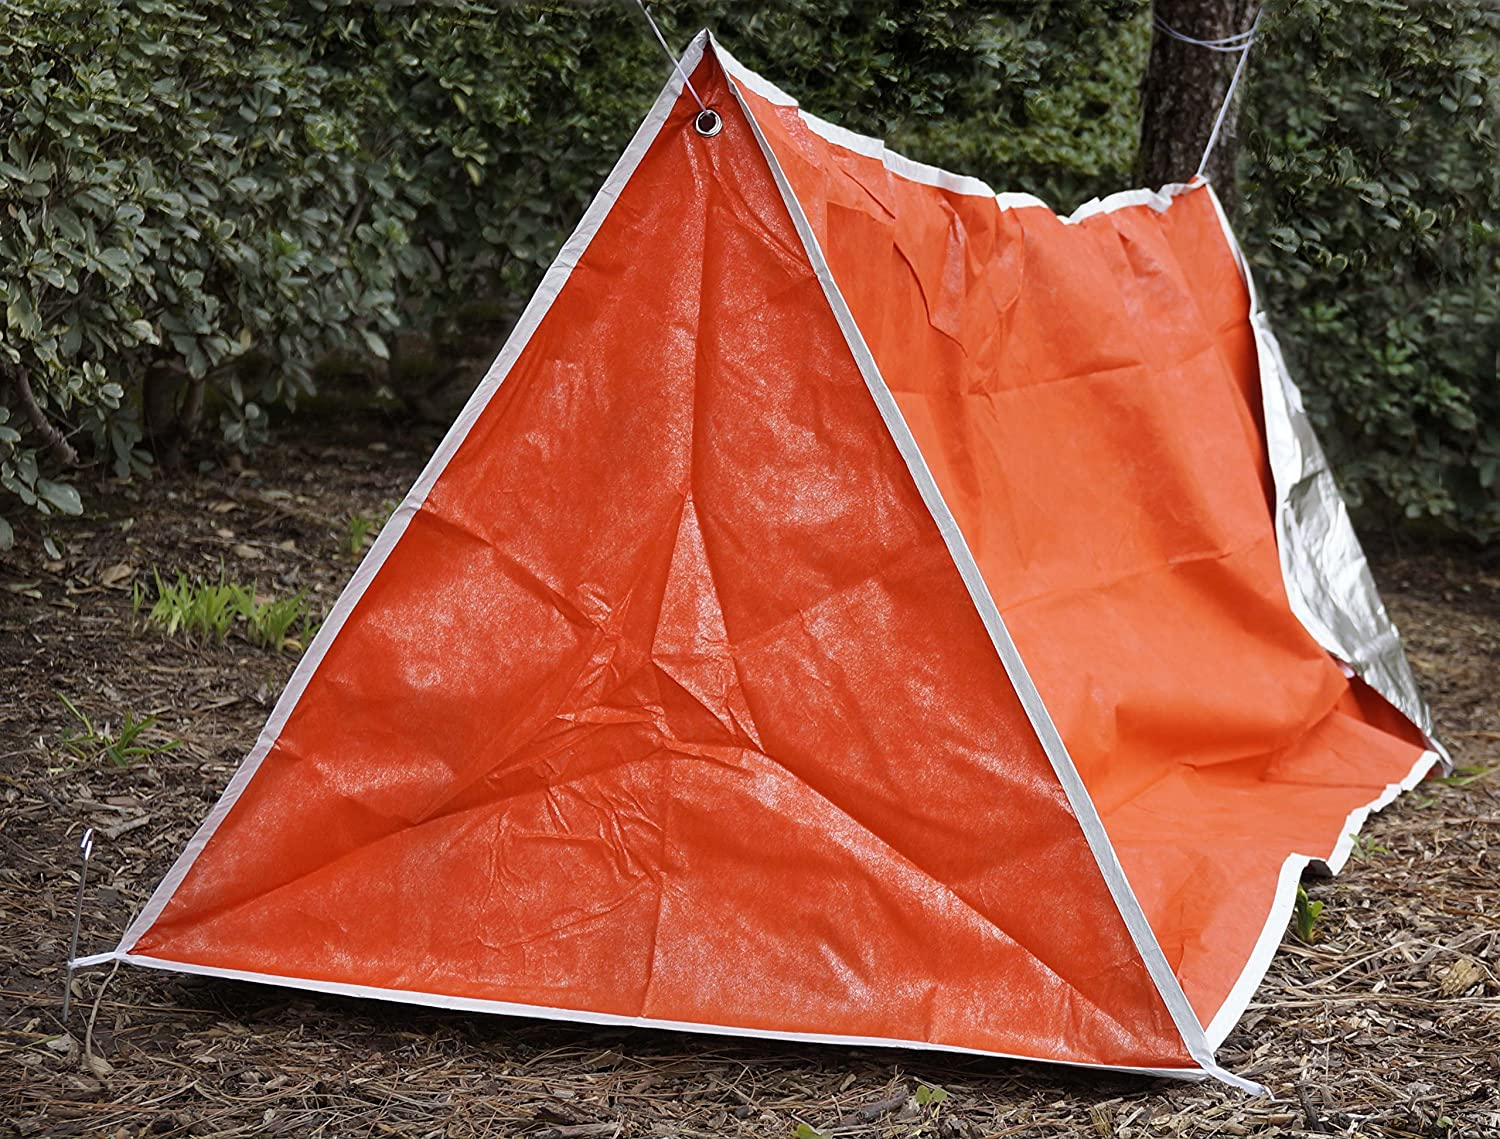 SE ET3683 Emergency Outdoor Tube Tent with Steel Tent Pegs Amazon.co.uk DIY u0026 Tools & SE ET3683 Emergency Outdoor Tube Tent with Steel Tent Pegs: Amazon ...